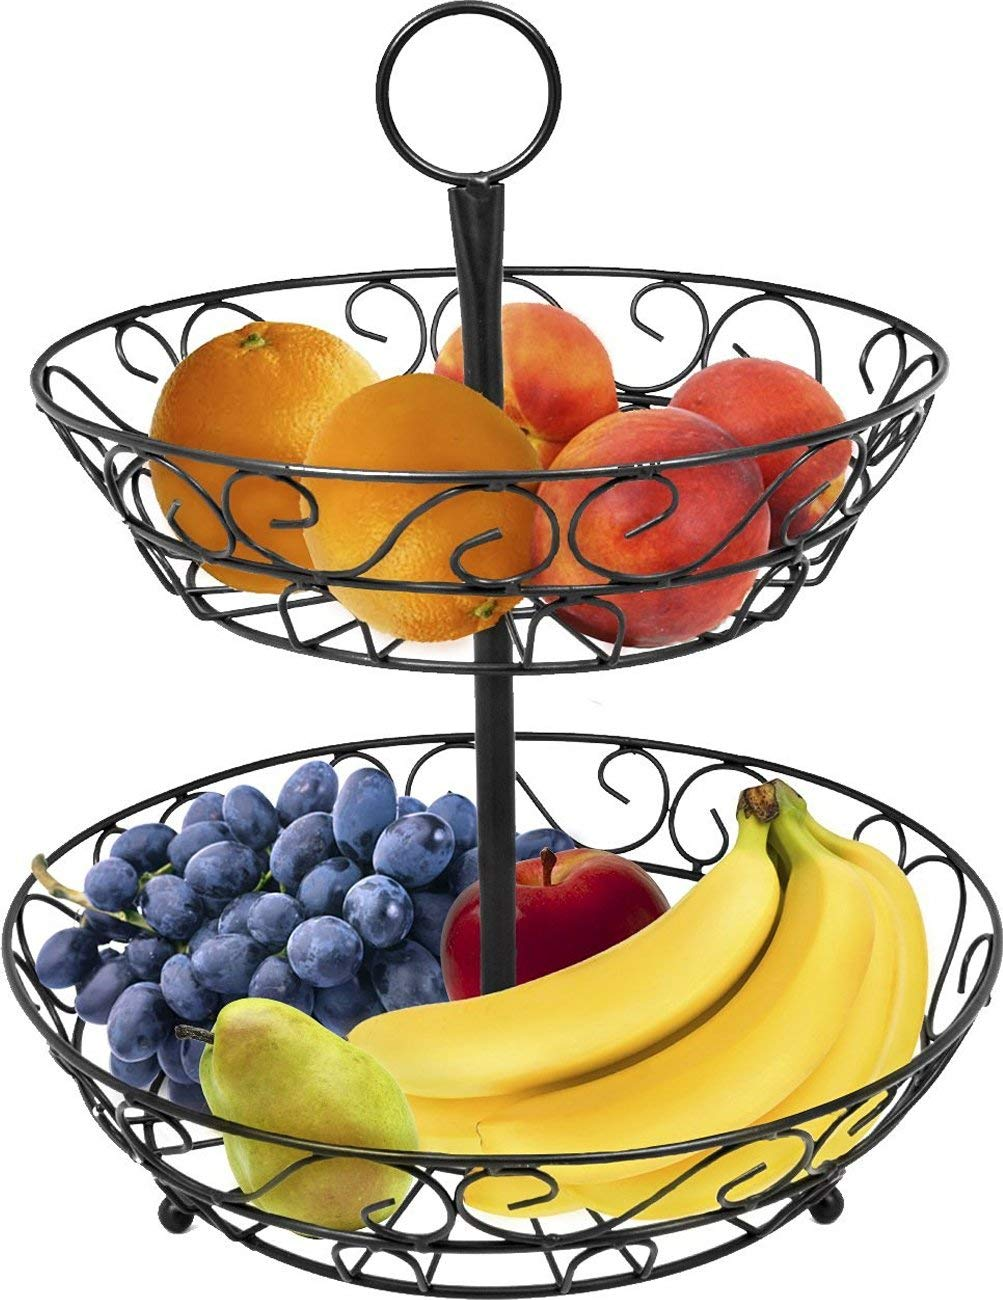 2 Tier Countertop Fruit Basket Holder & Decorative Bowl Stand Basket Perfect for Fruit, Vegetables, Snacks, Household Items